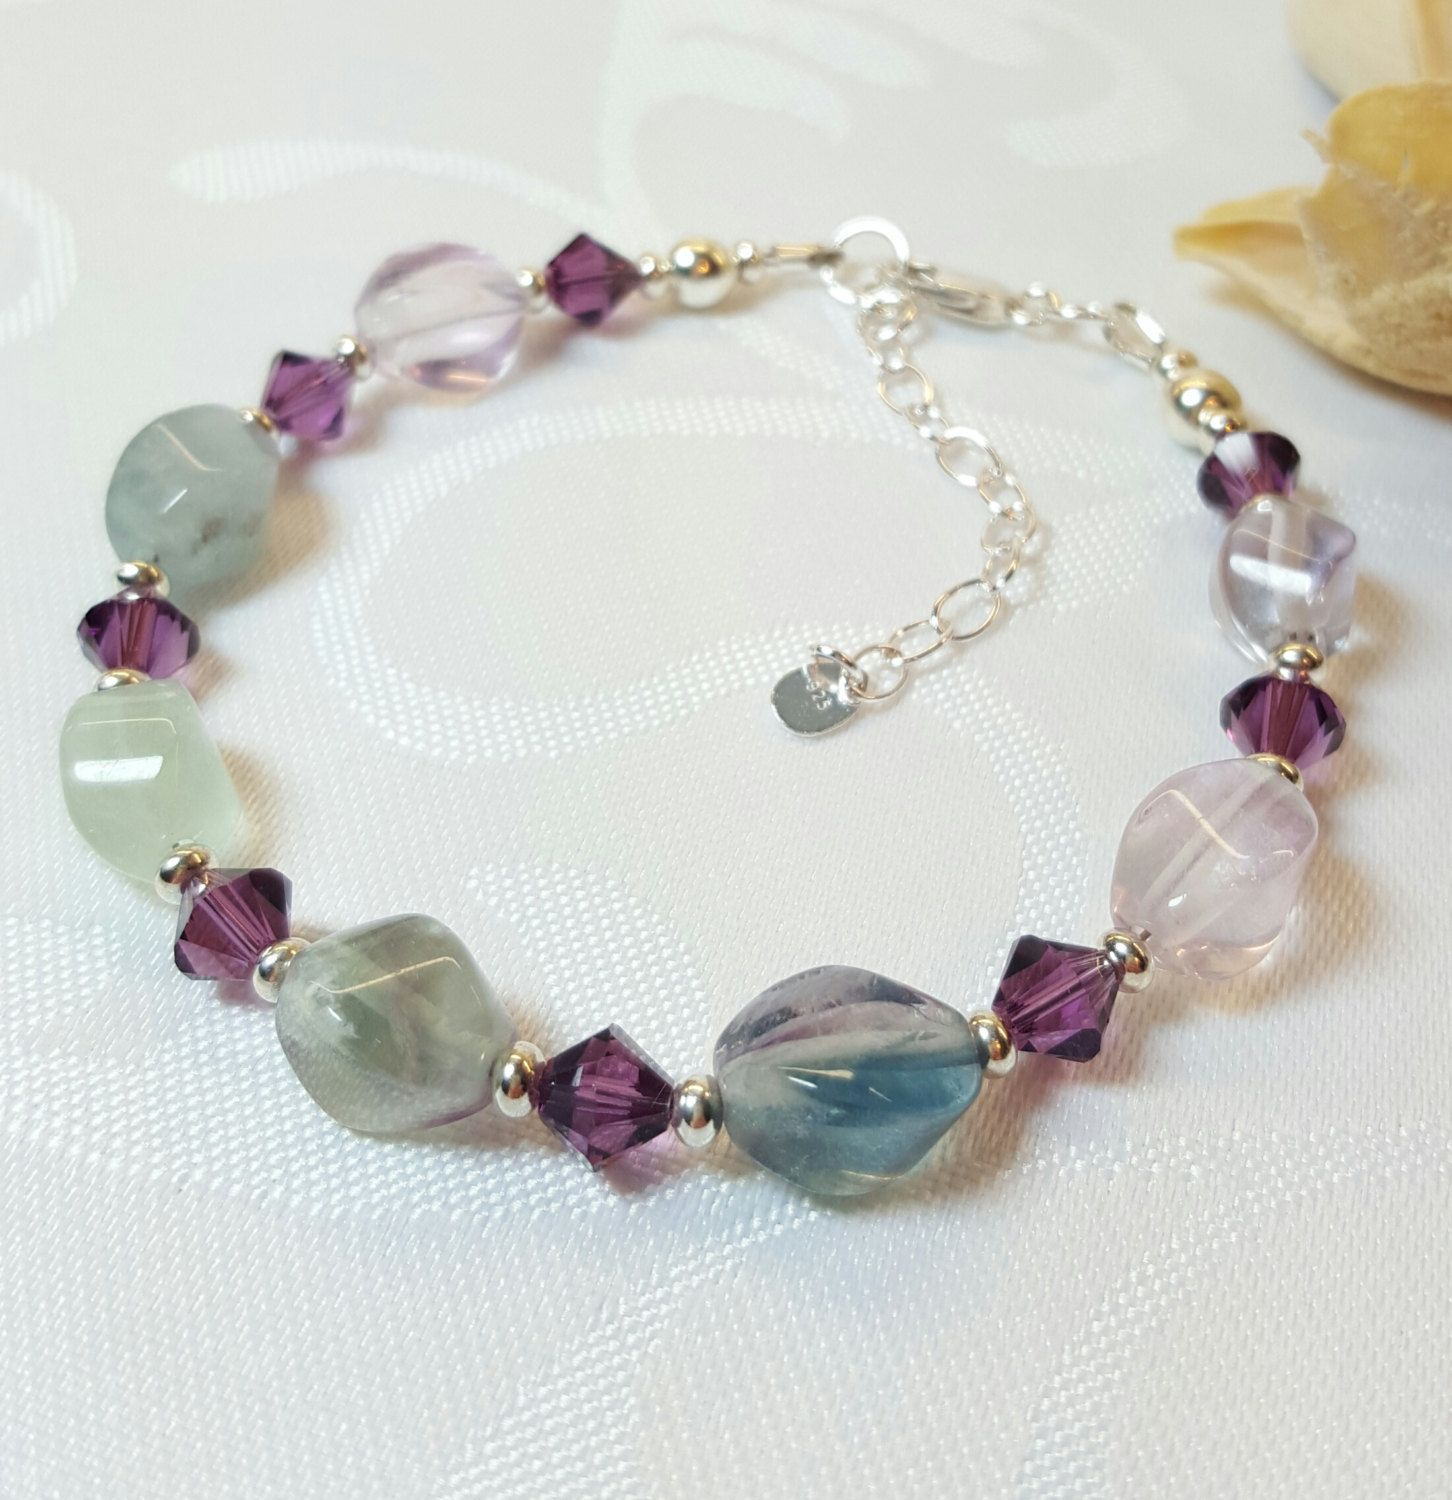 Sterling Silver & Sparkly Rainbow Pastels Crystals Handmade Bracelet Made With SWAROVSKI ELEMENTS 2 1CphUZy